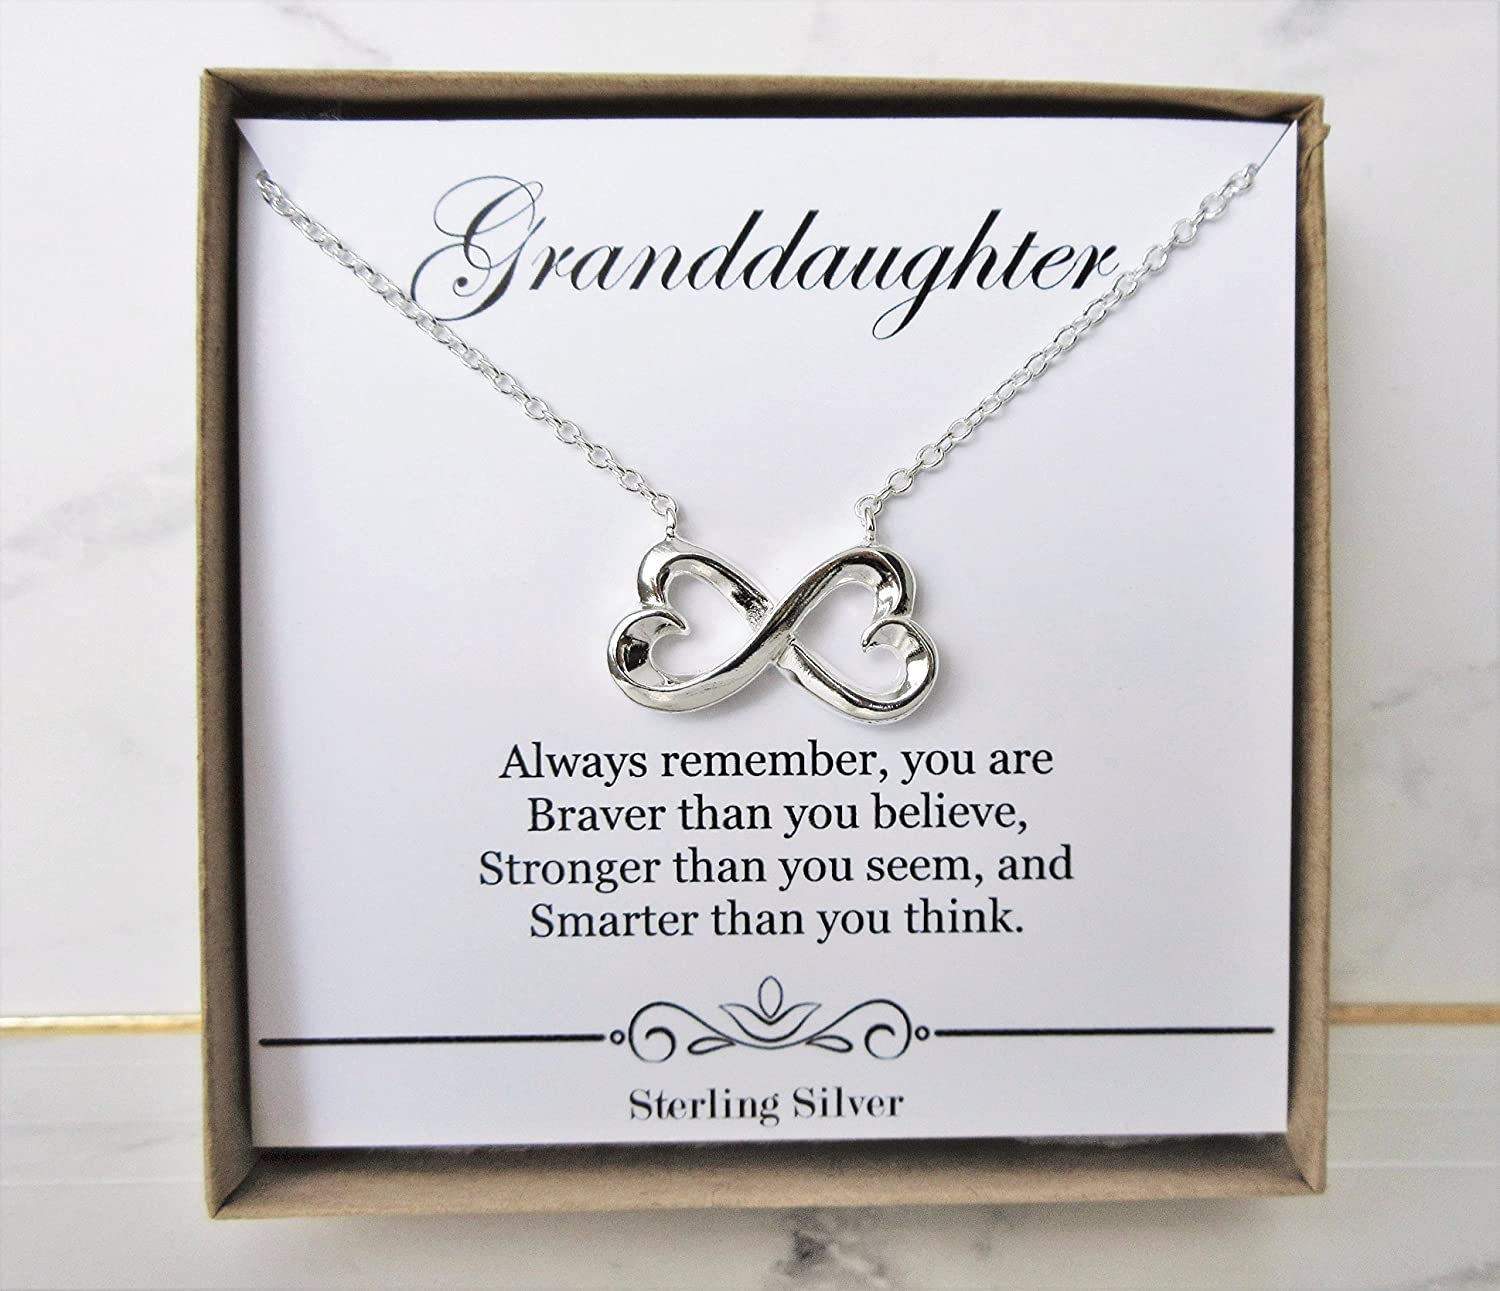 To MY Granddaughter Necklace Jewelry Gift Love Grandma To Granddaughter For Christmas Birthday School Graduation Wedding Granddaughter Gift